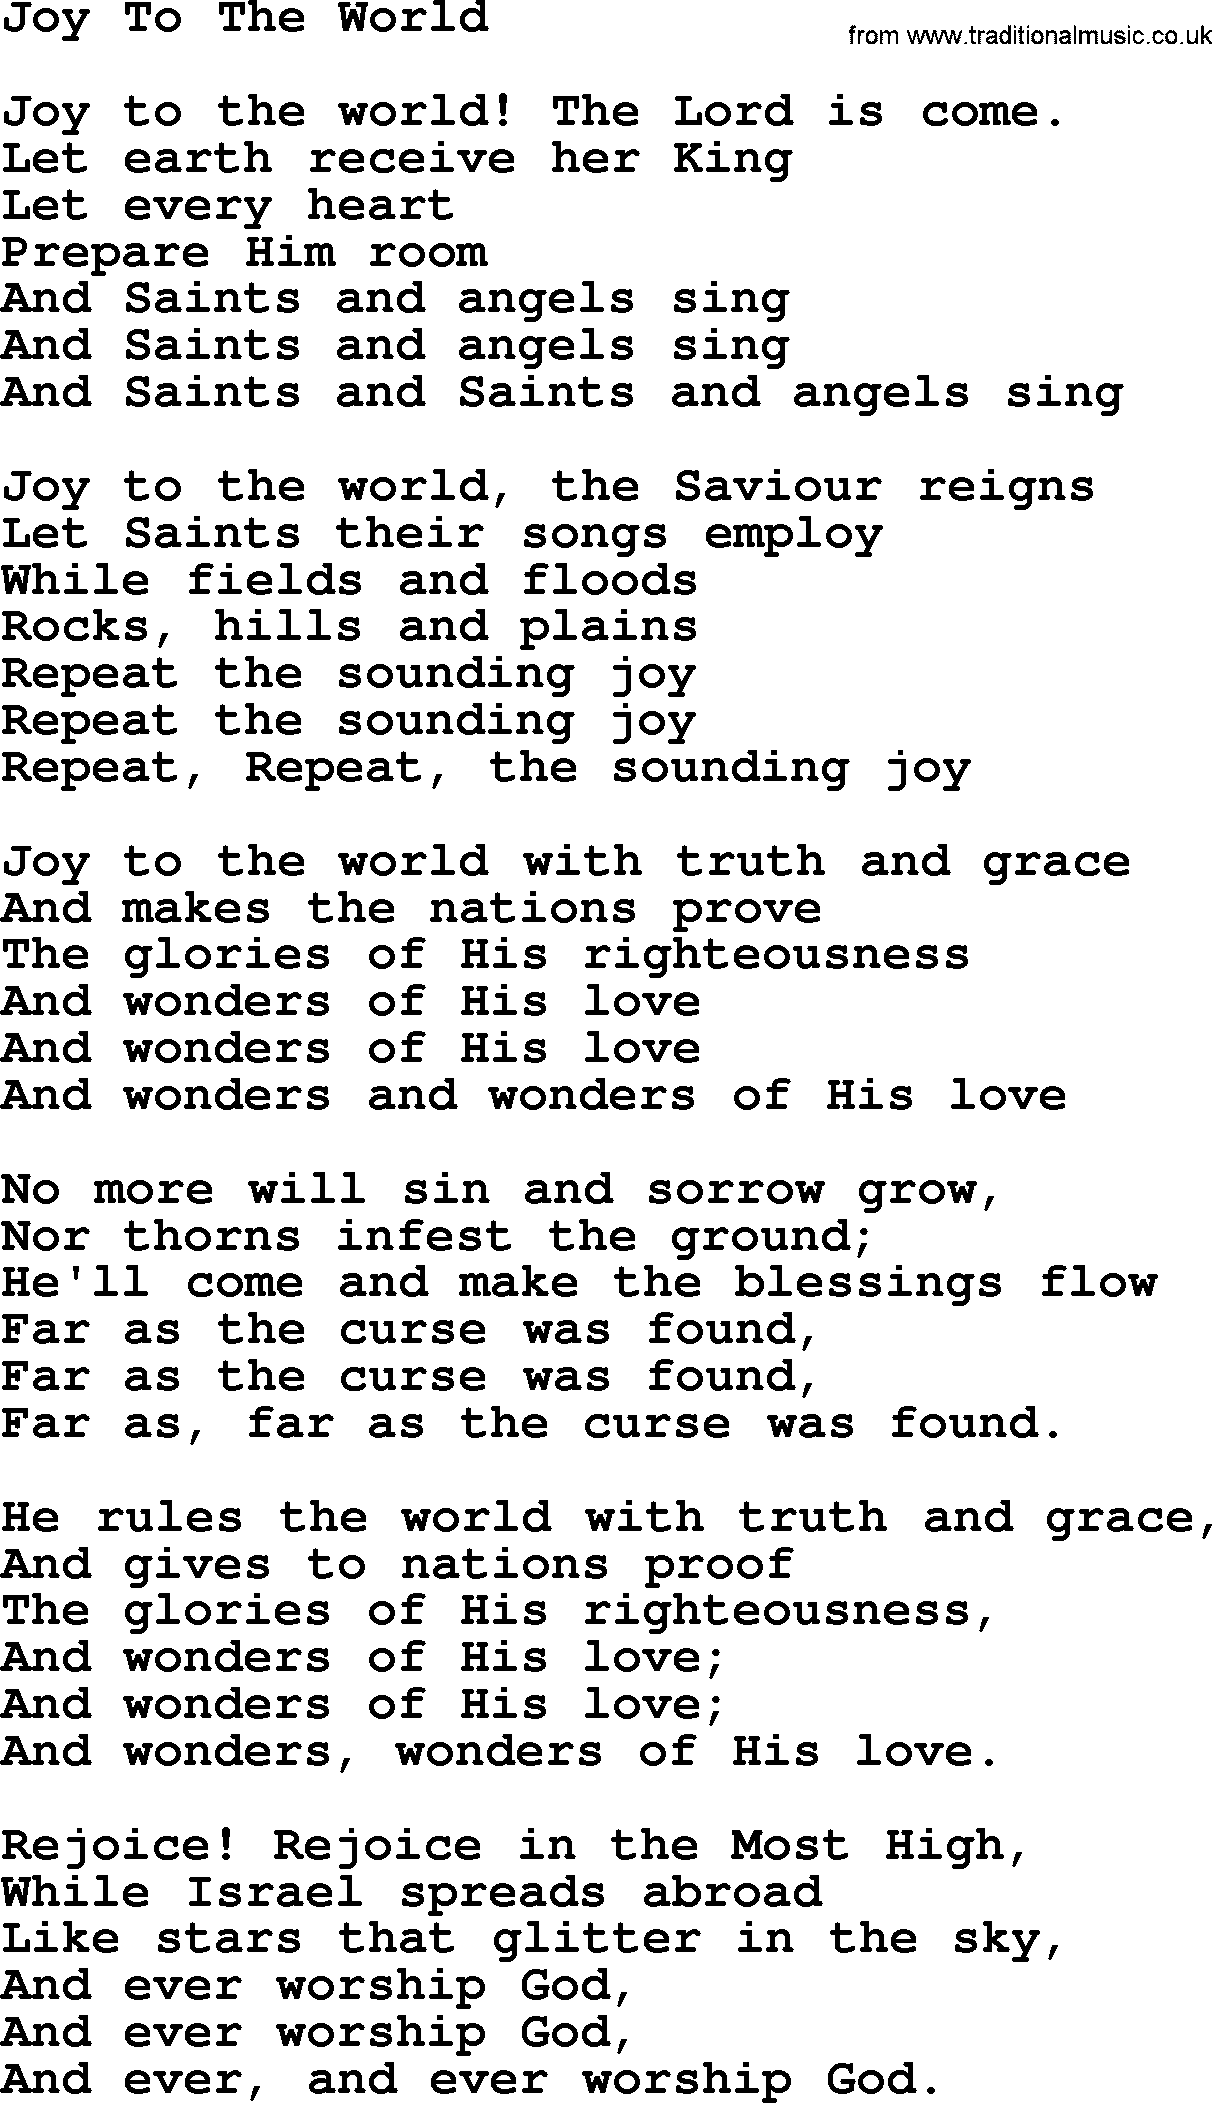 Download joy to the world as pdf file for printing etc